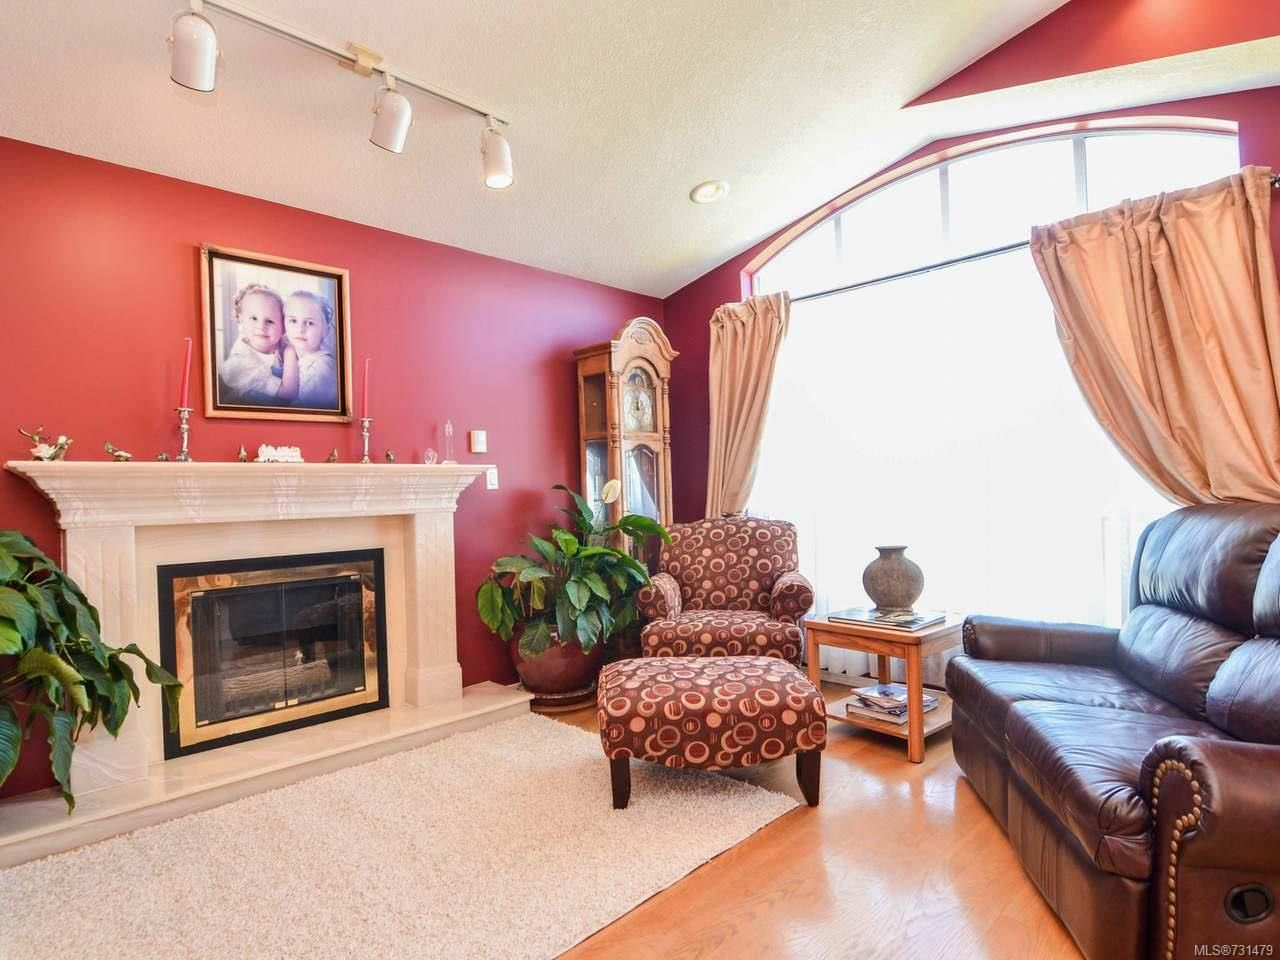 Photo 11: Photos: 753 Bowen Dr in CAMPBELL RIVER: CR Willow Point House for sale (Campbell River)  : MLS®# 731479